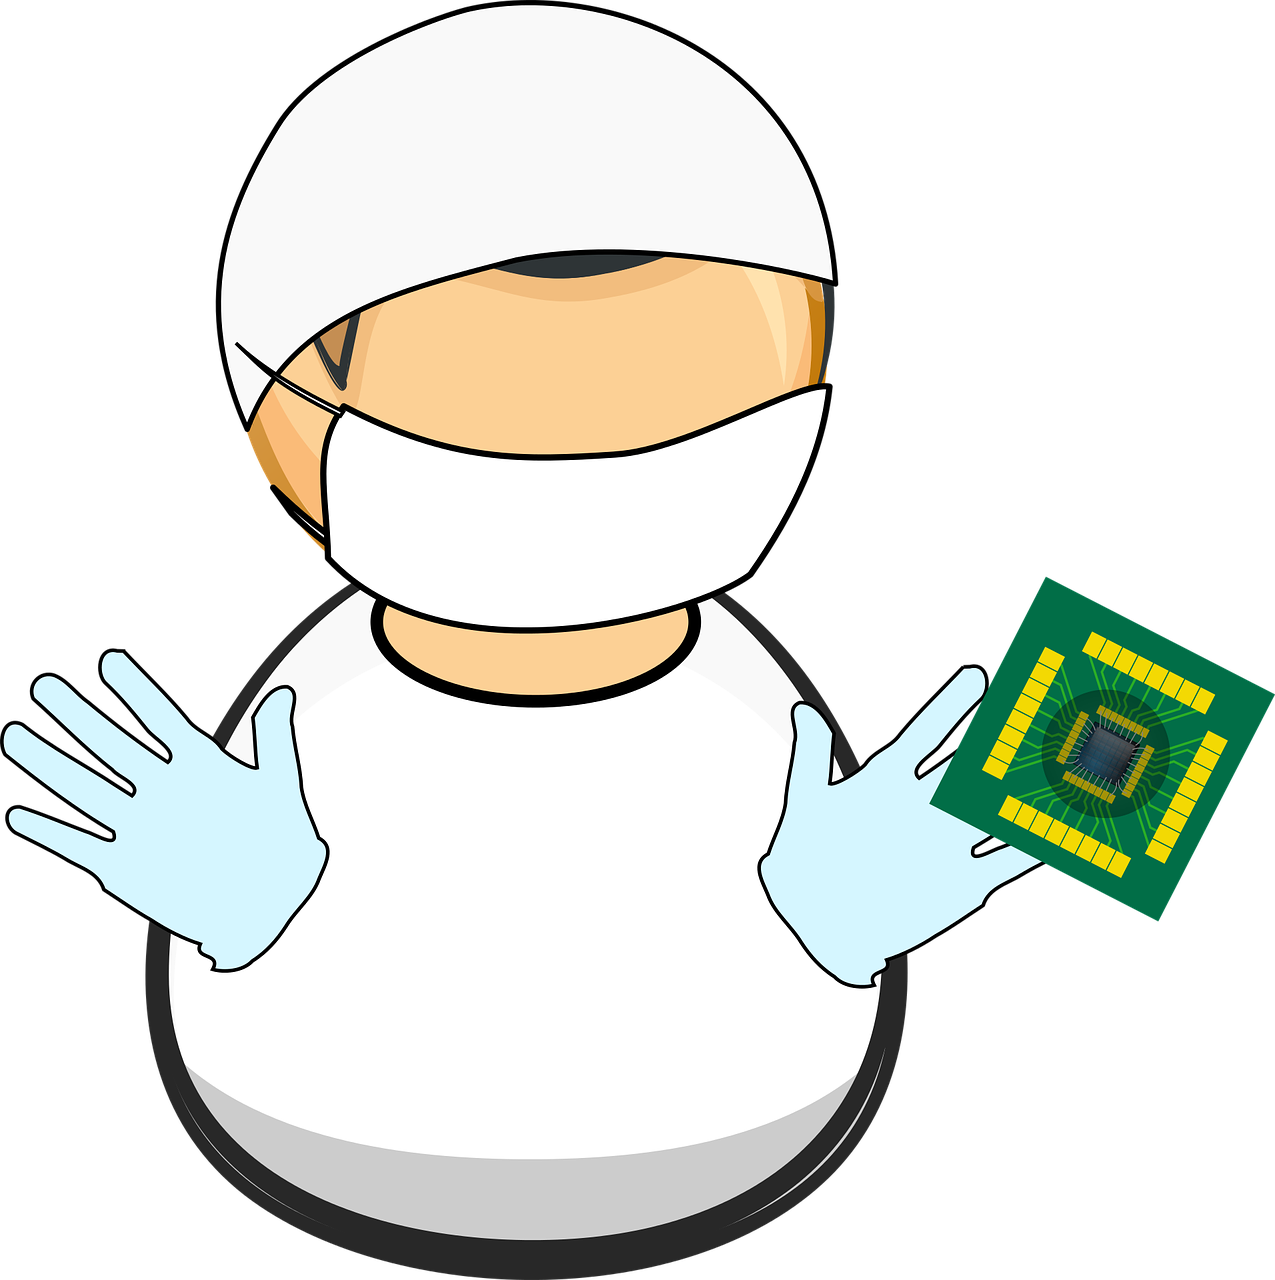 Microchip vector electronics. Chip clean comic characters